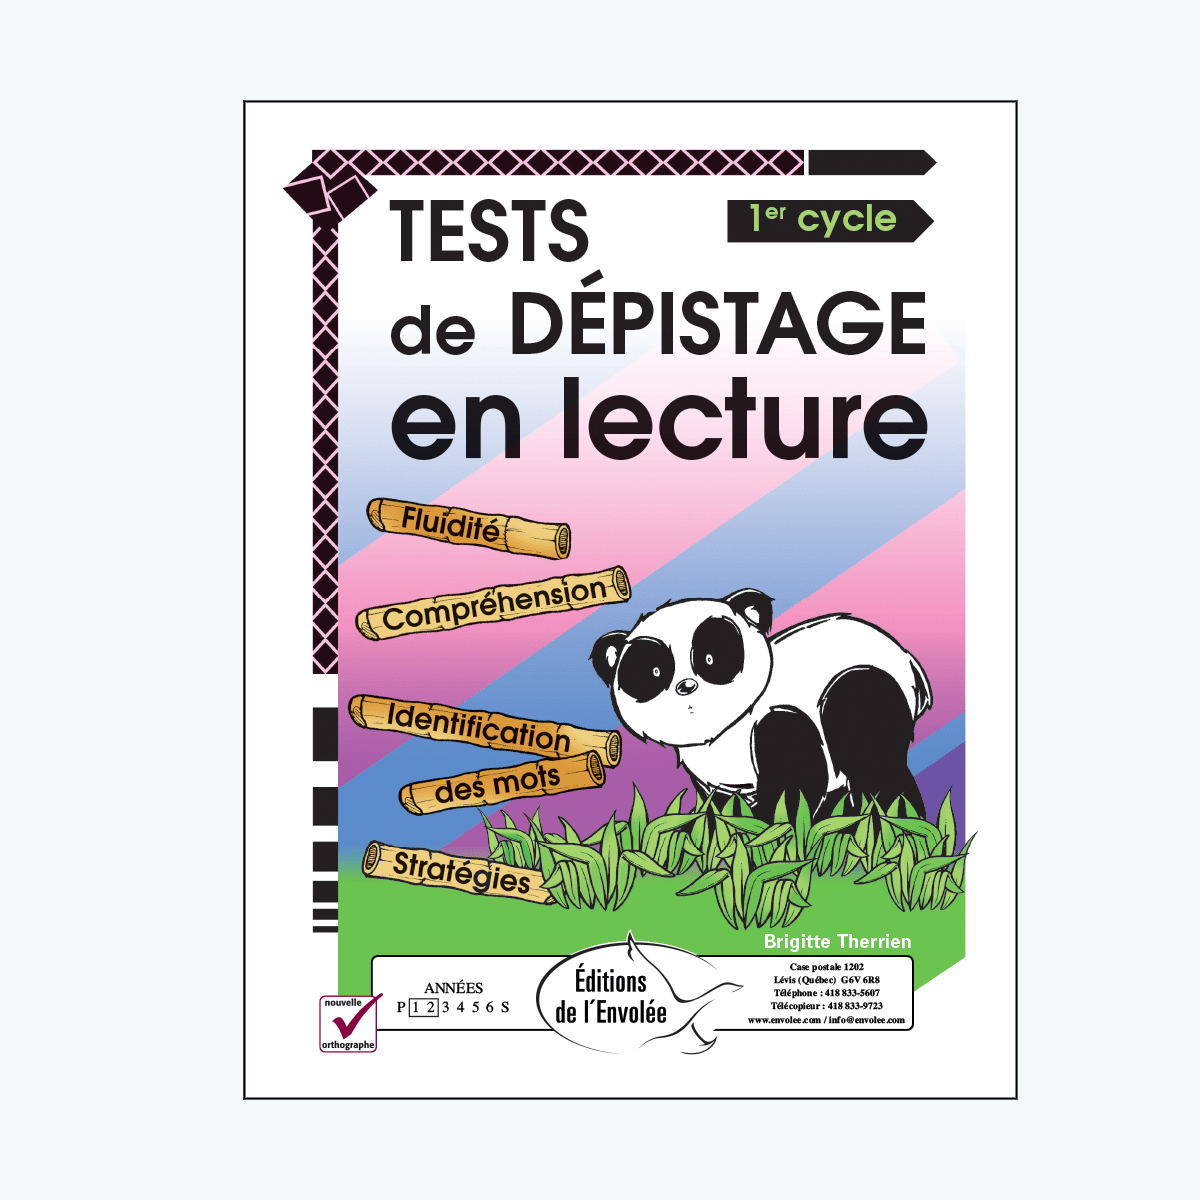 Tests de dépistage en lecture - 1er cycle